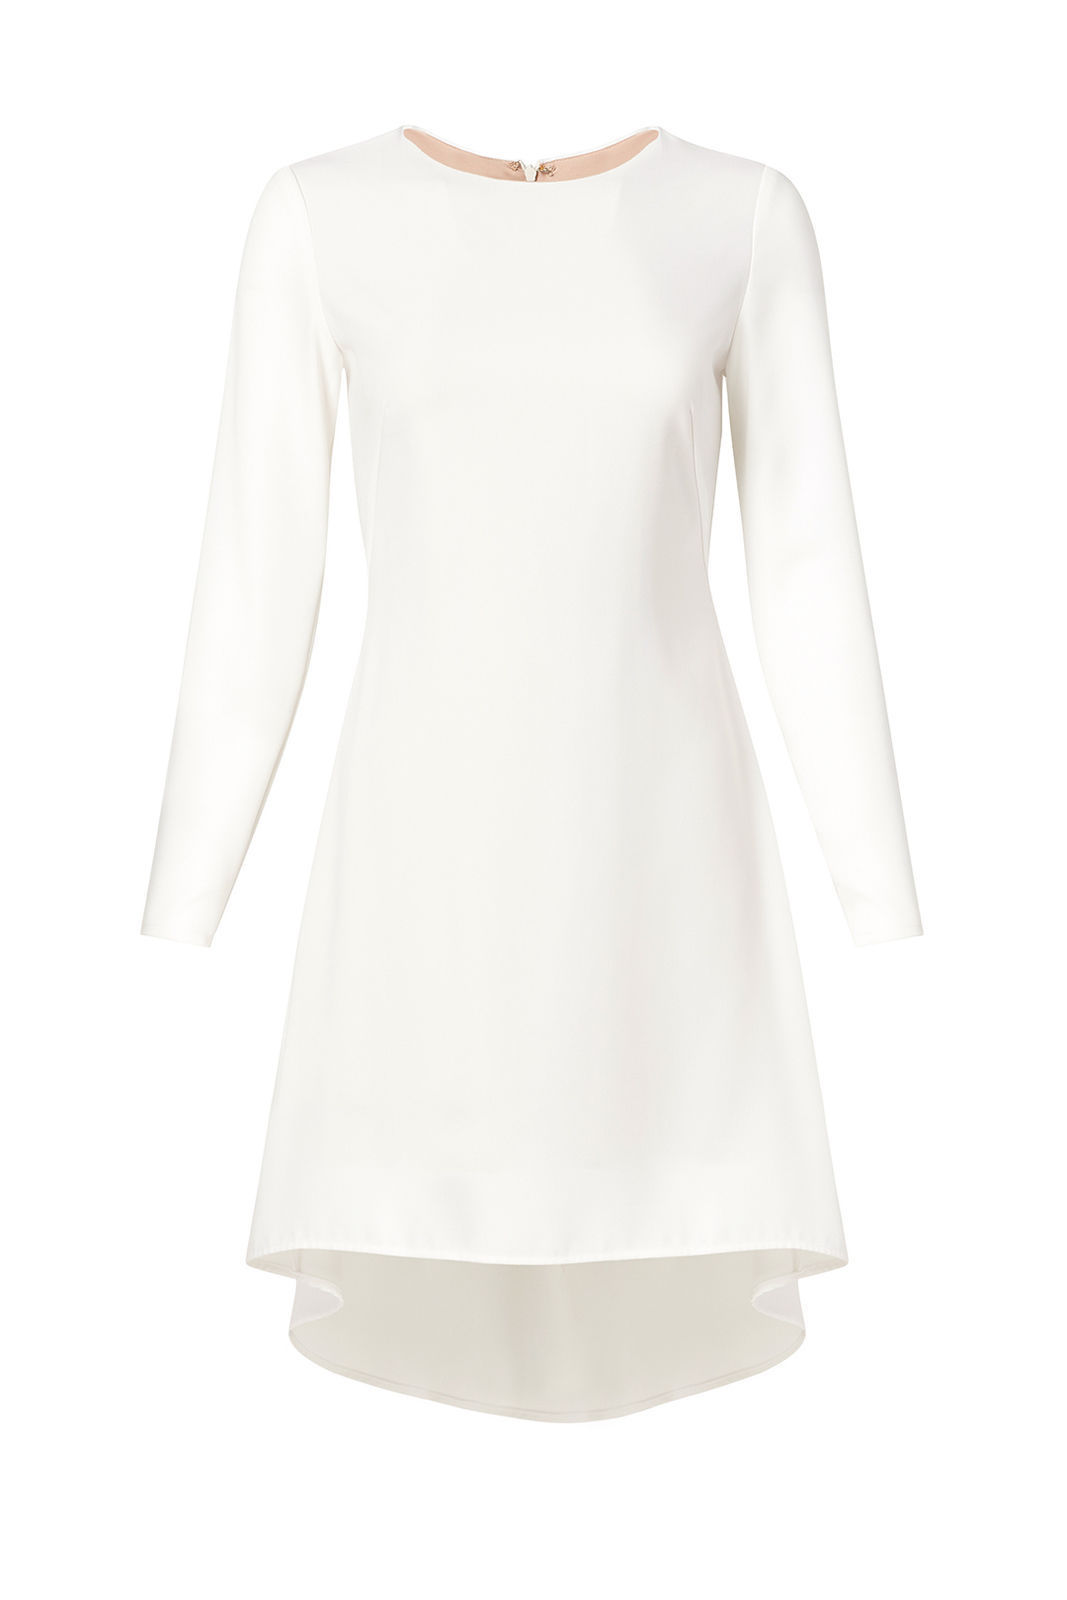 Nha-Khanh-White-Women-039-s-US-Size-4-Sheath-Stretch-Crepe-High-Low-Dress-425-111